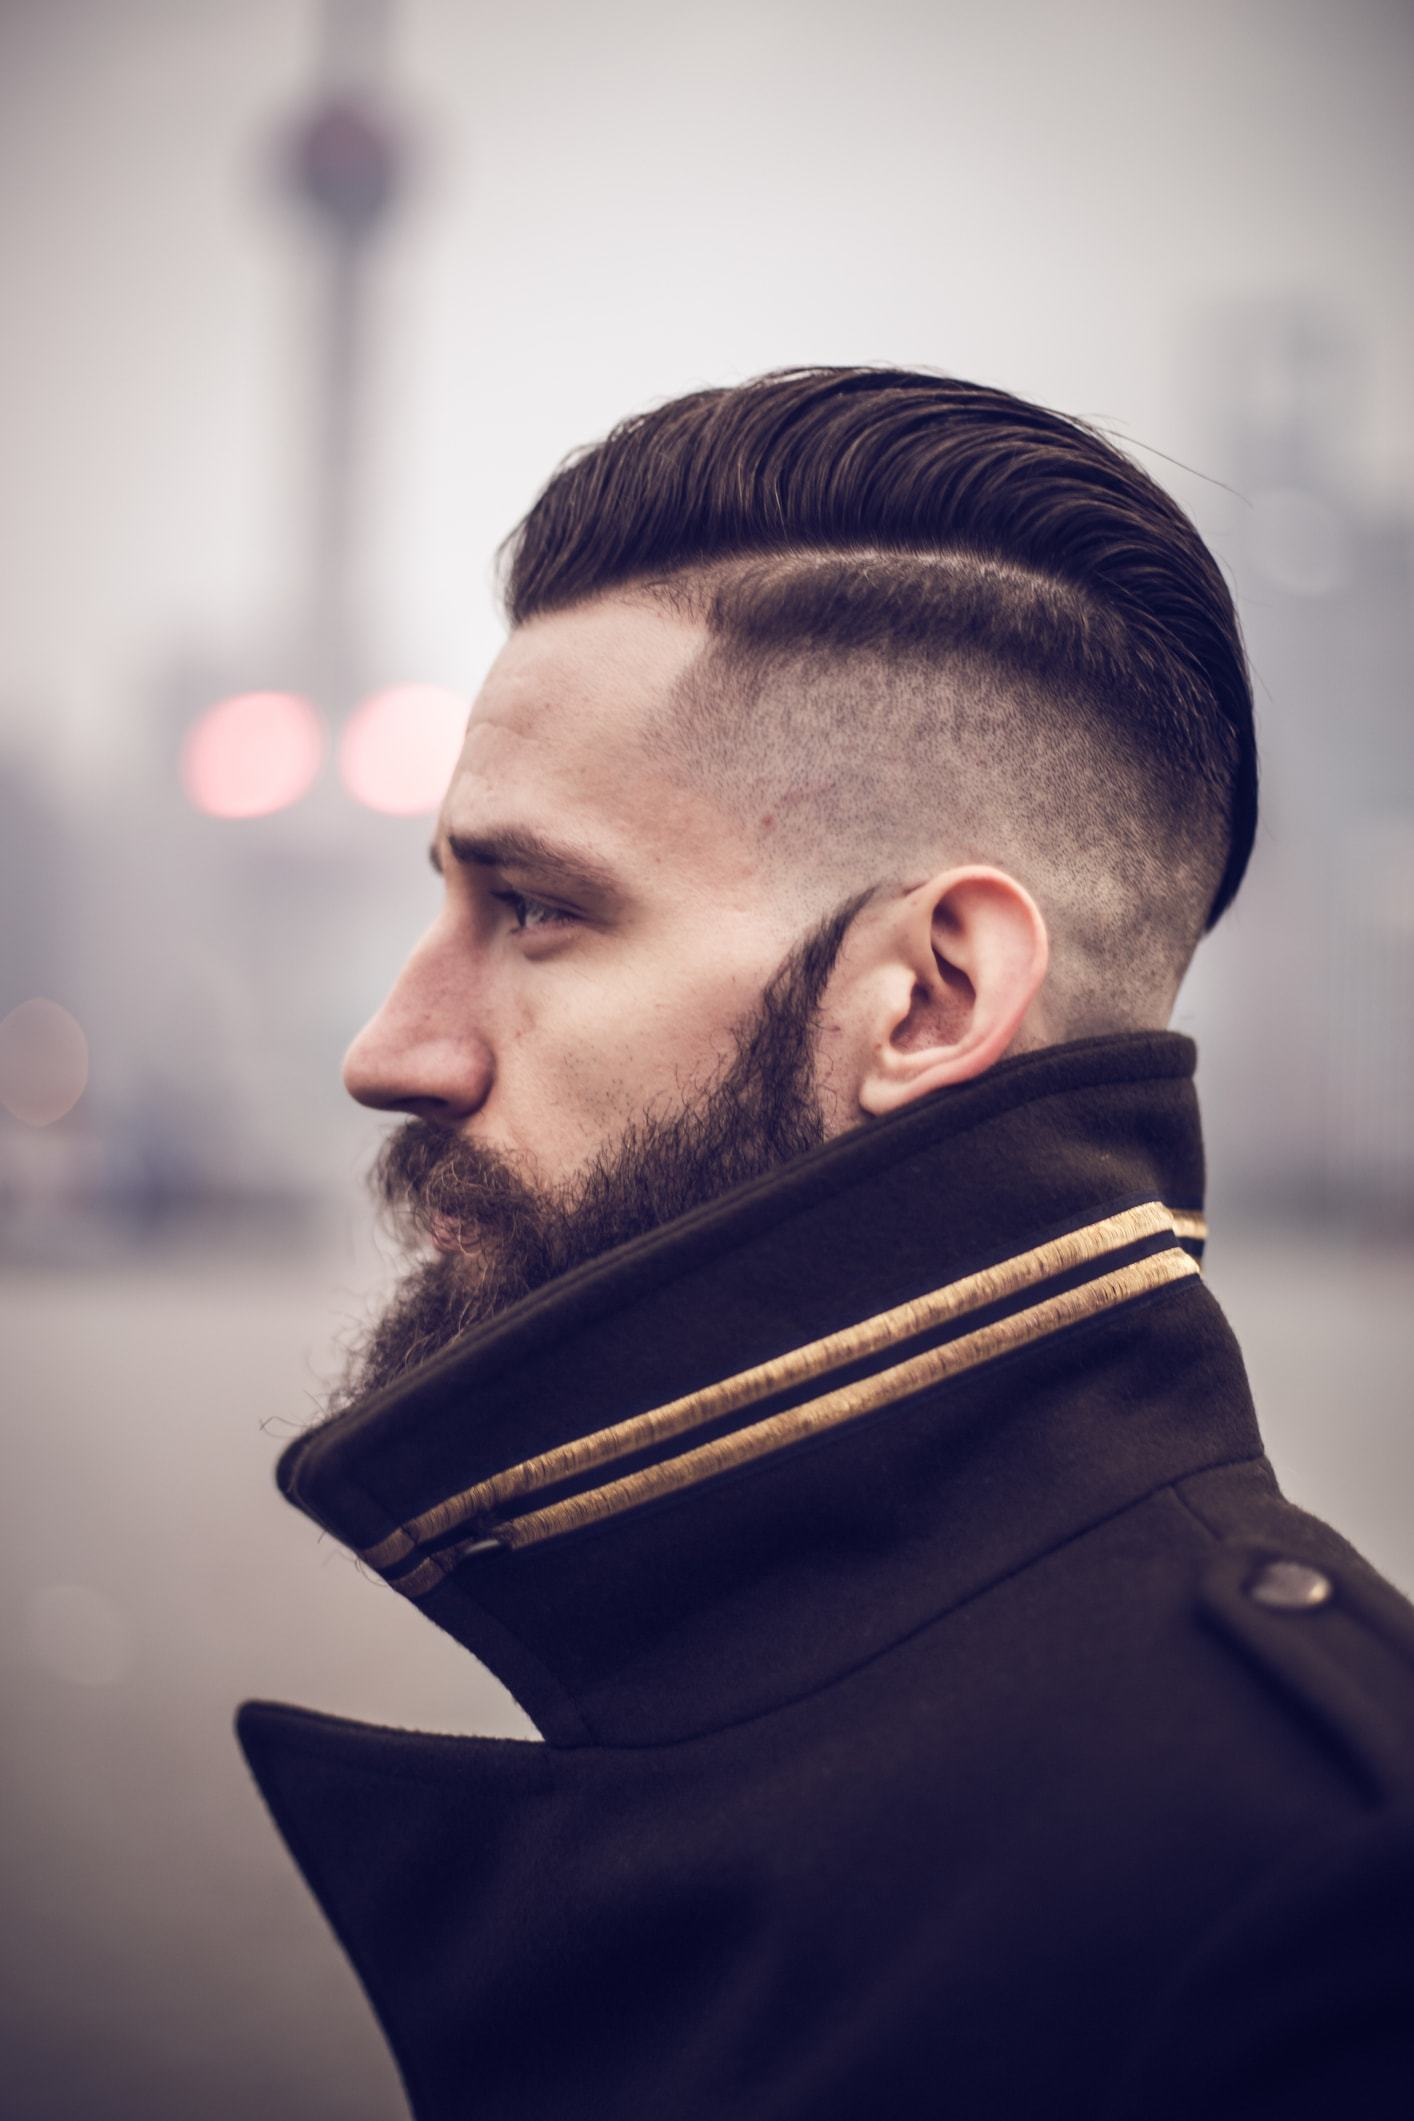 Young Men Haircuts: Trendy Looks To Try, from College to Corporate